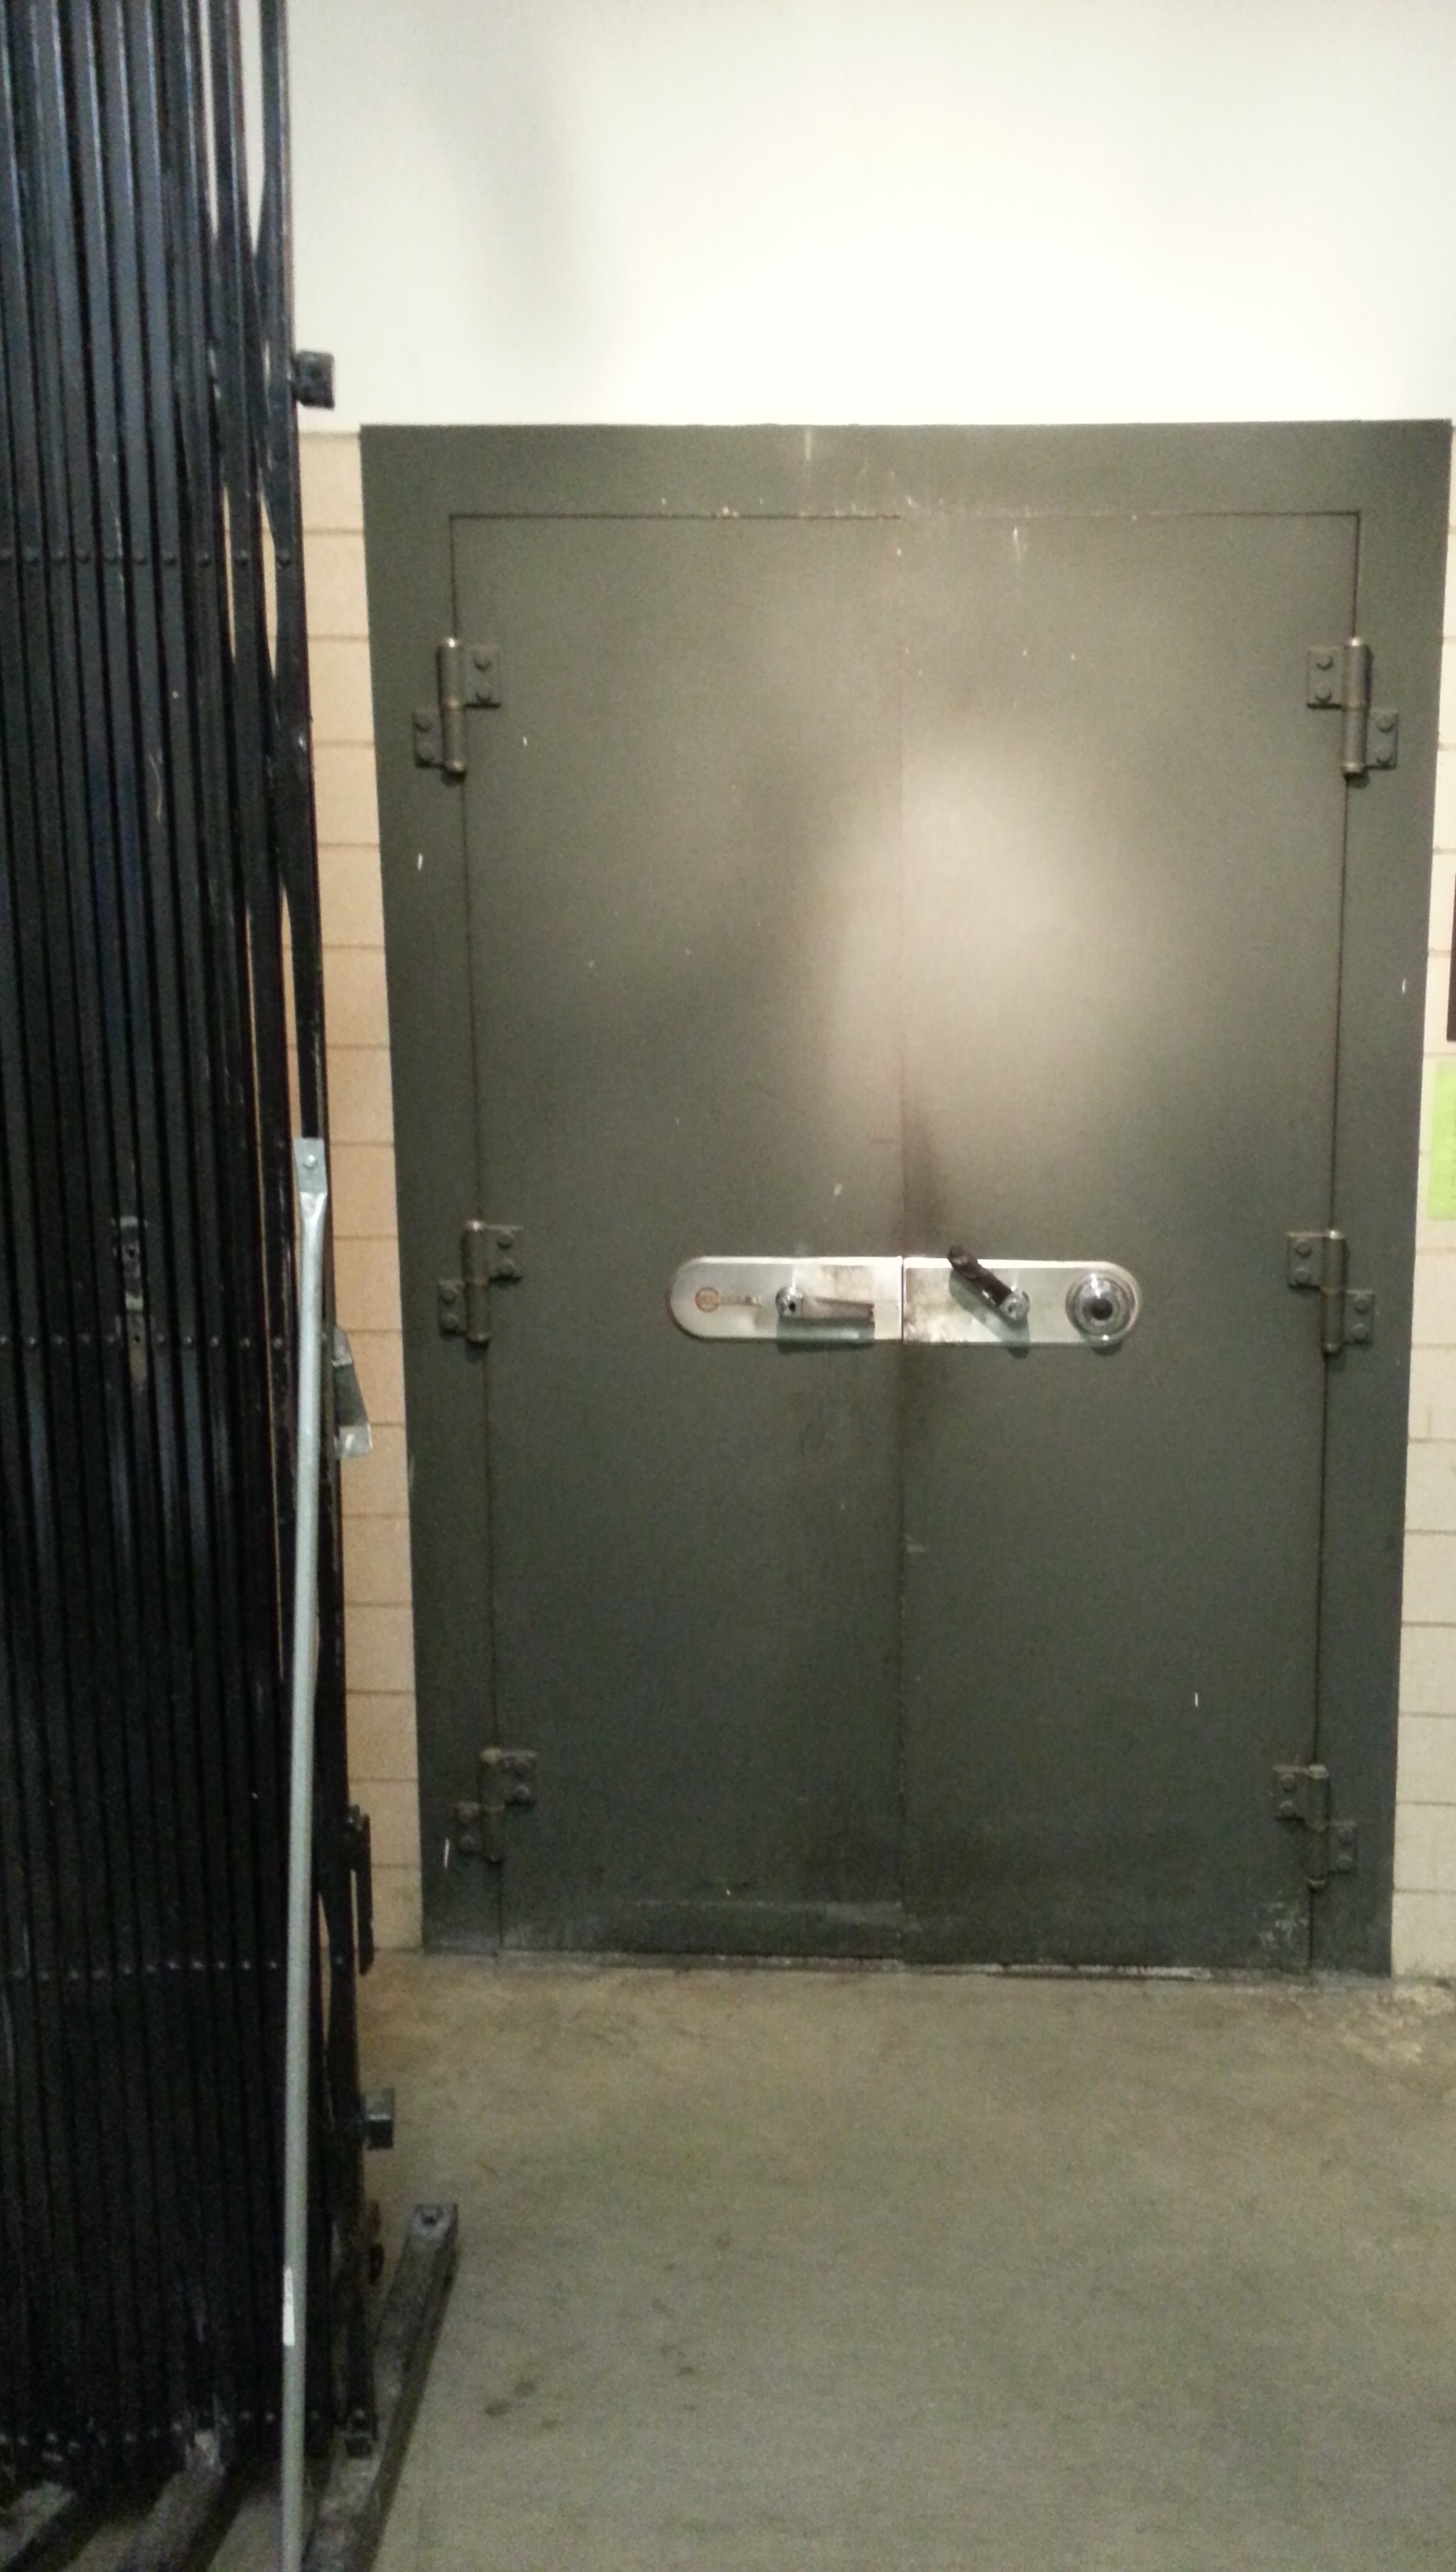 Old-fashioned vault door.